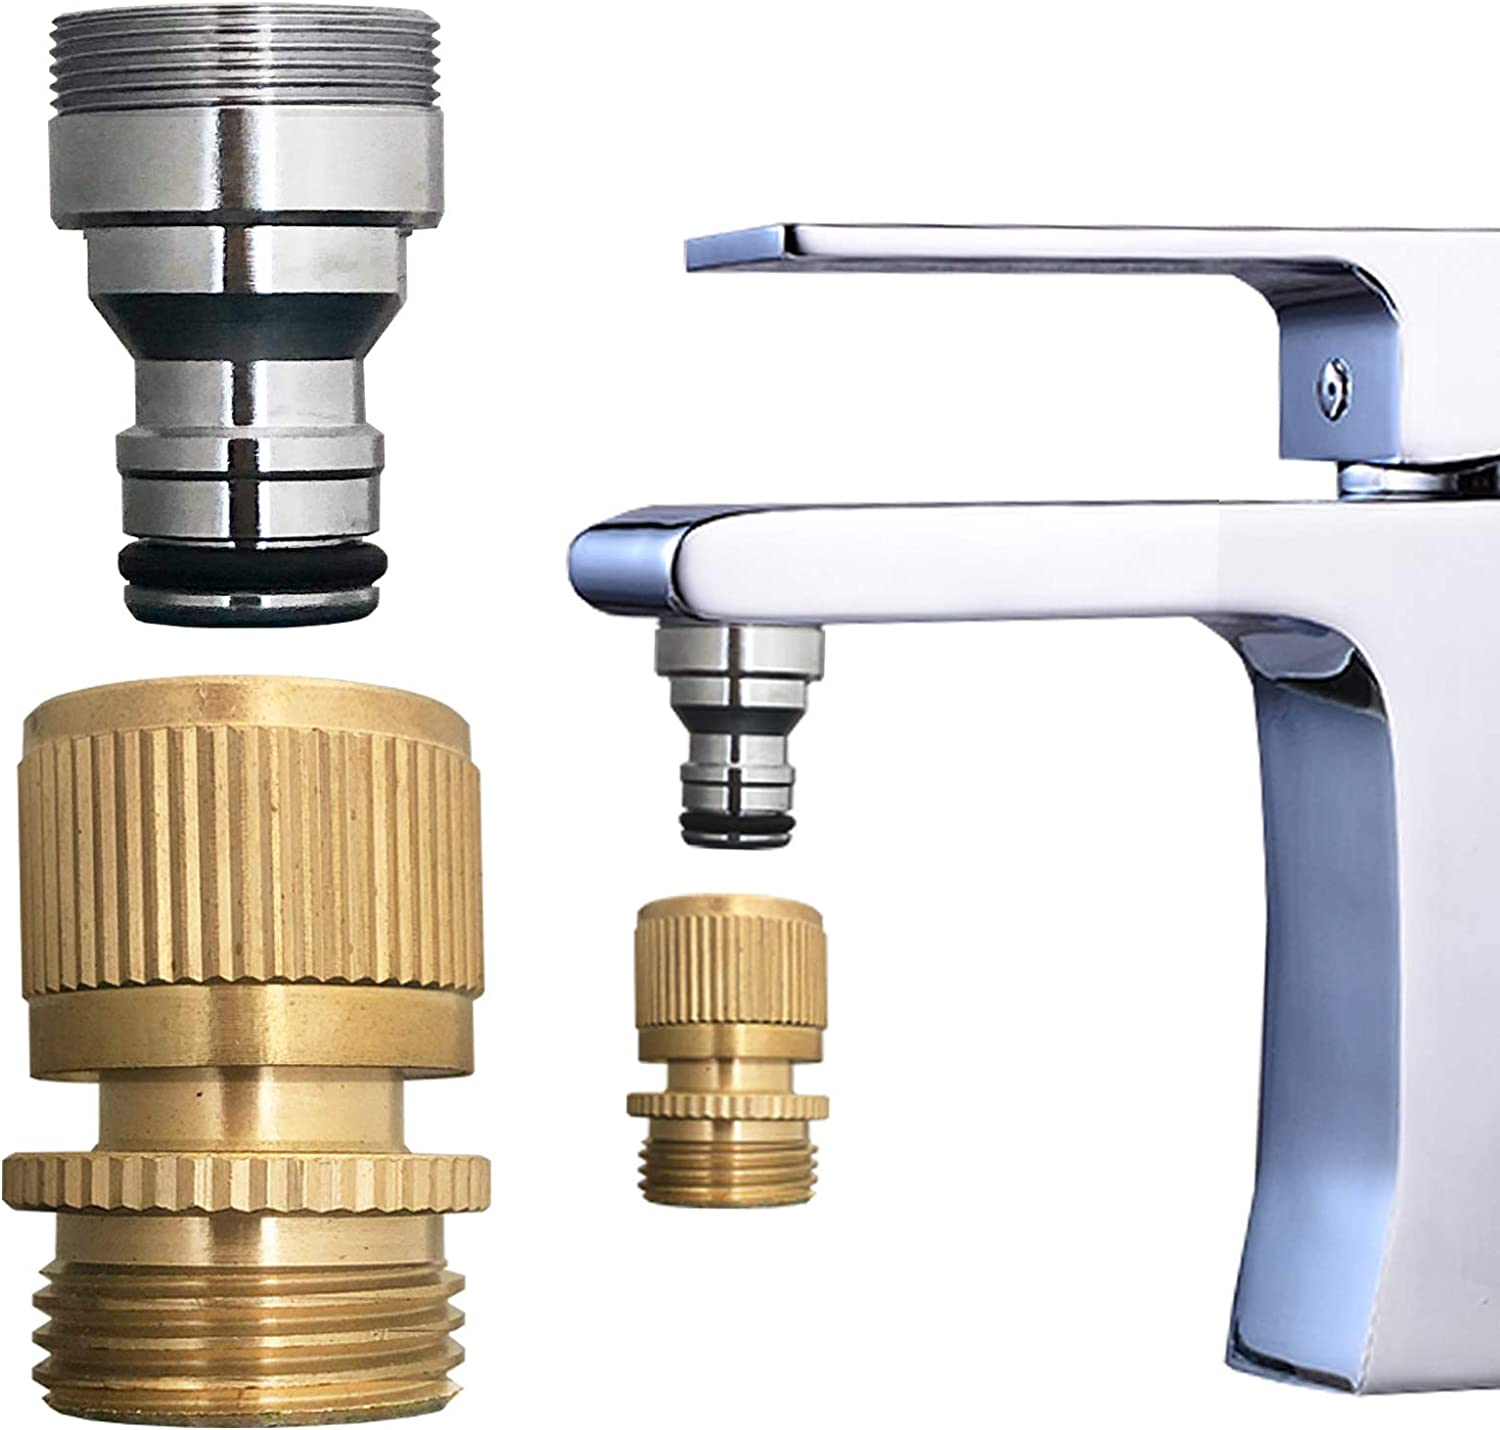 bathroom Sink Faucet snap adapter quick connect to garden hose, kitchen faucet aratored quick snap connector to 3/4 inch GHT female for washer, indoor sink quick-fit attachment